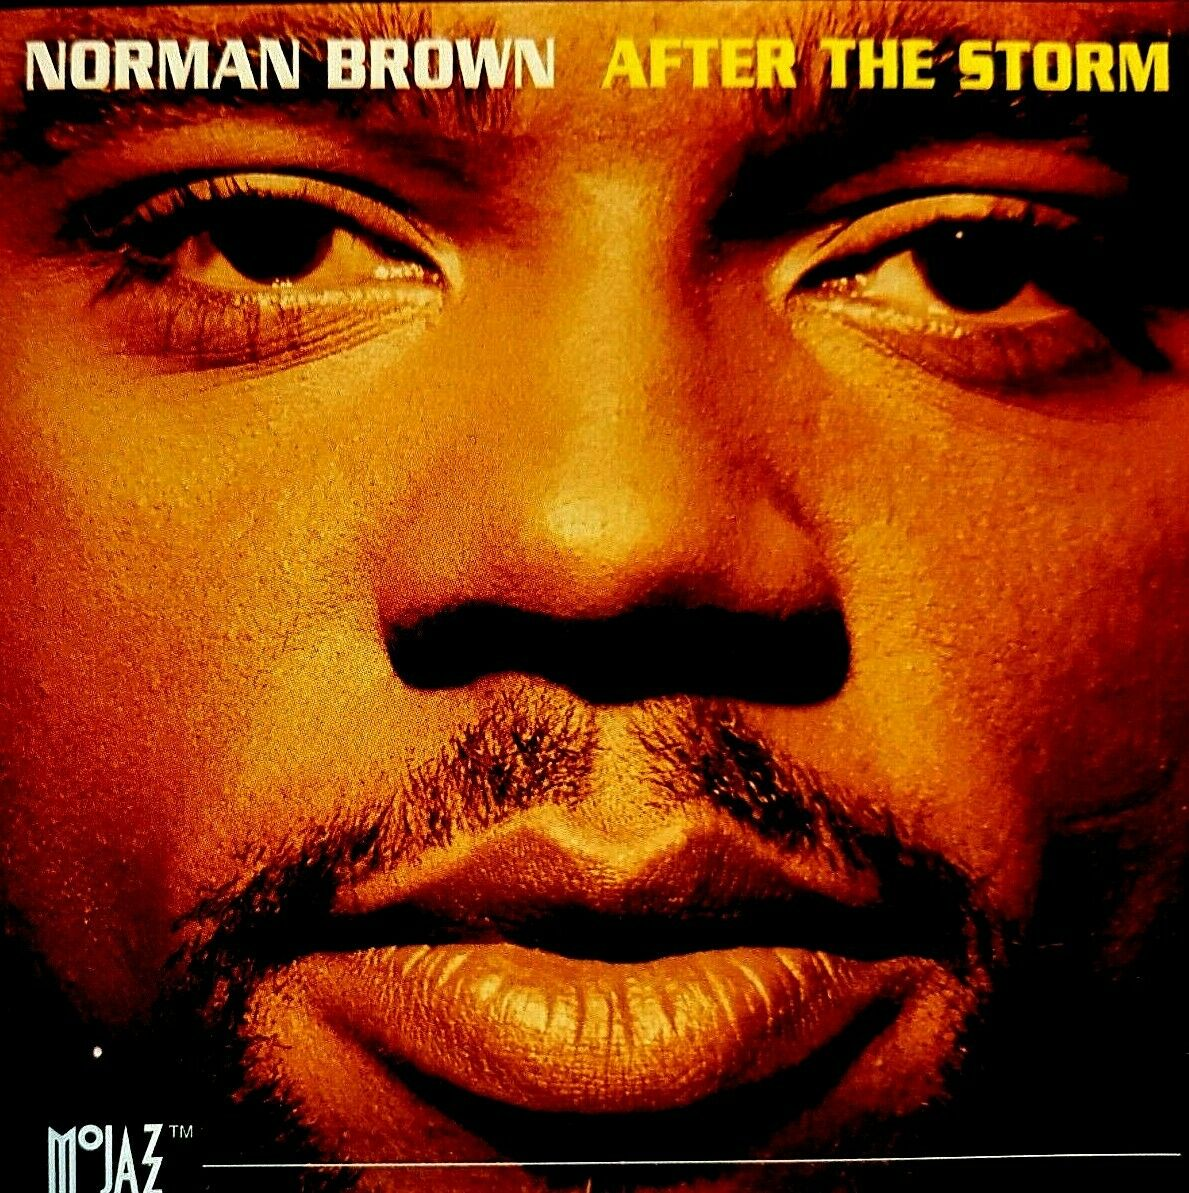 After the Storm by Norman Brown (Guitar) (CD, Mar-1994, Universal  Distribution) for sale online | eBay